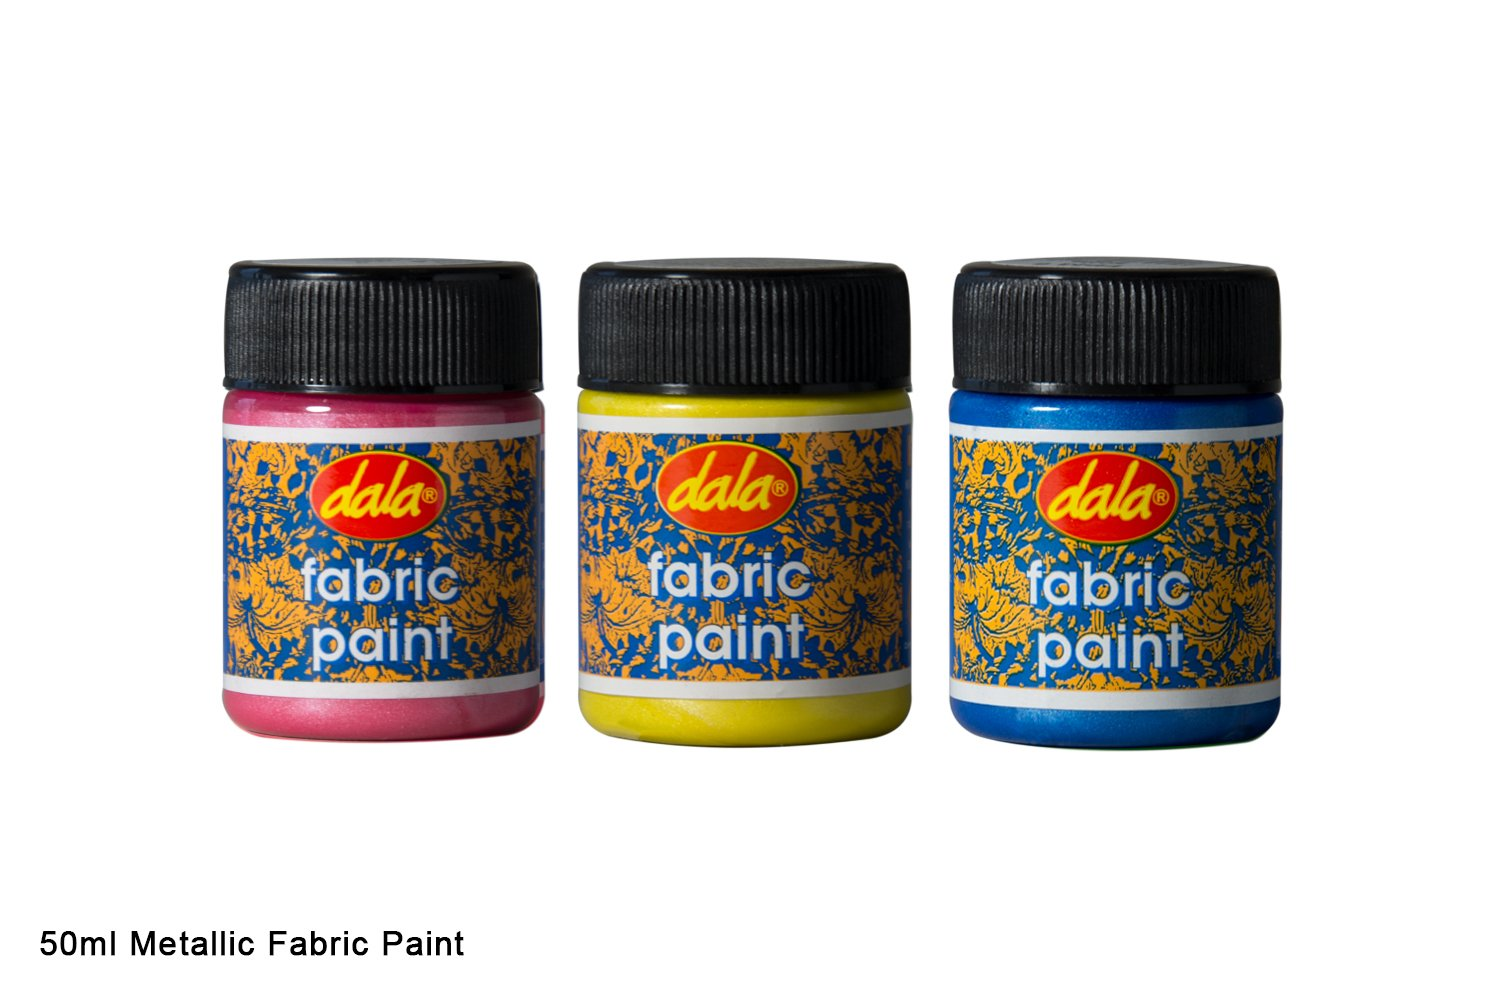 metallic fabric paint dala